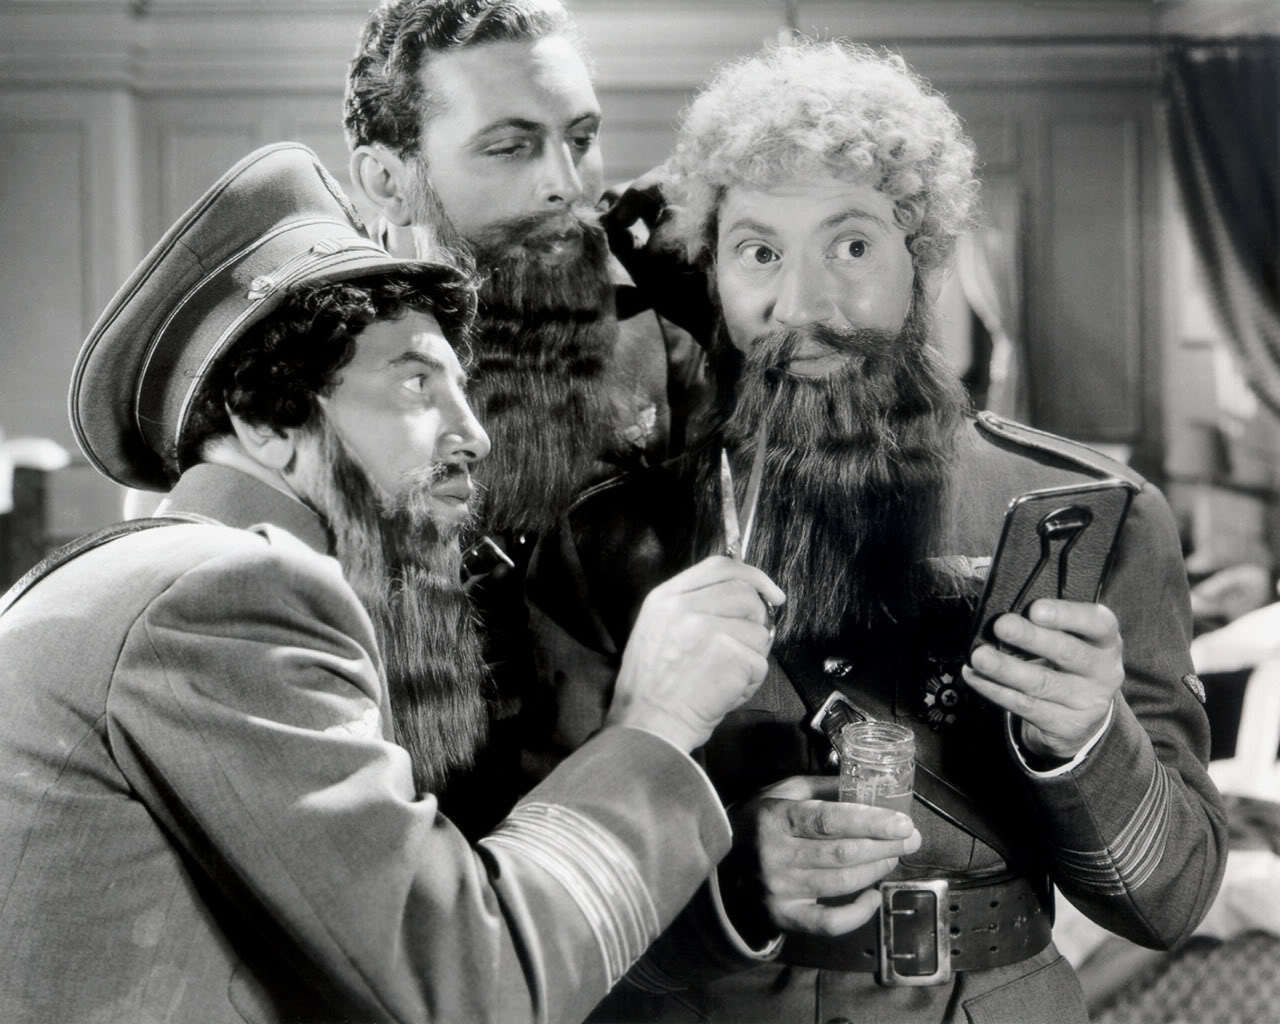 1280x1024 - Marx Brothers Wallpapers 27